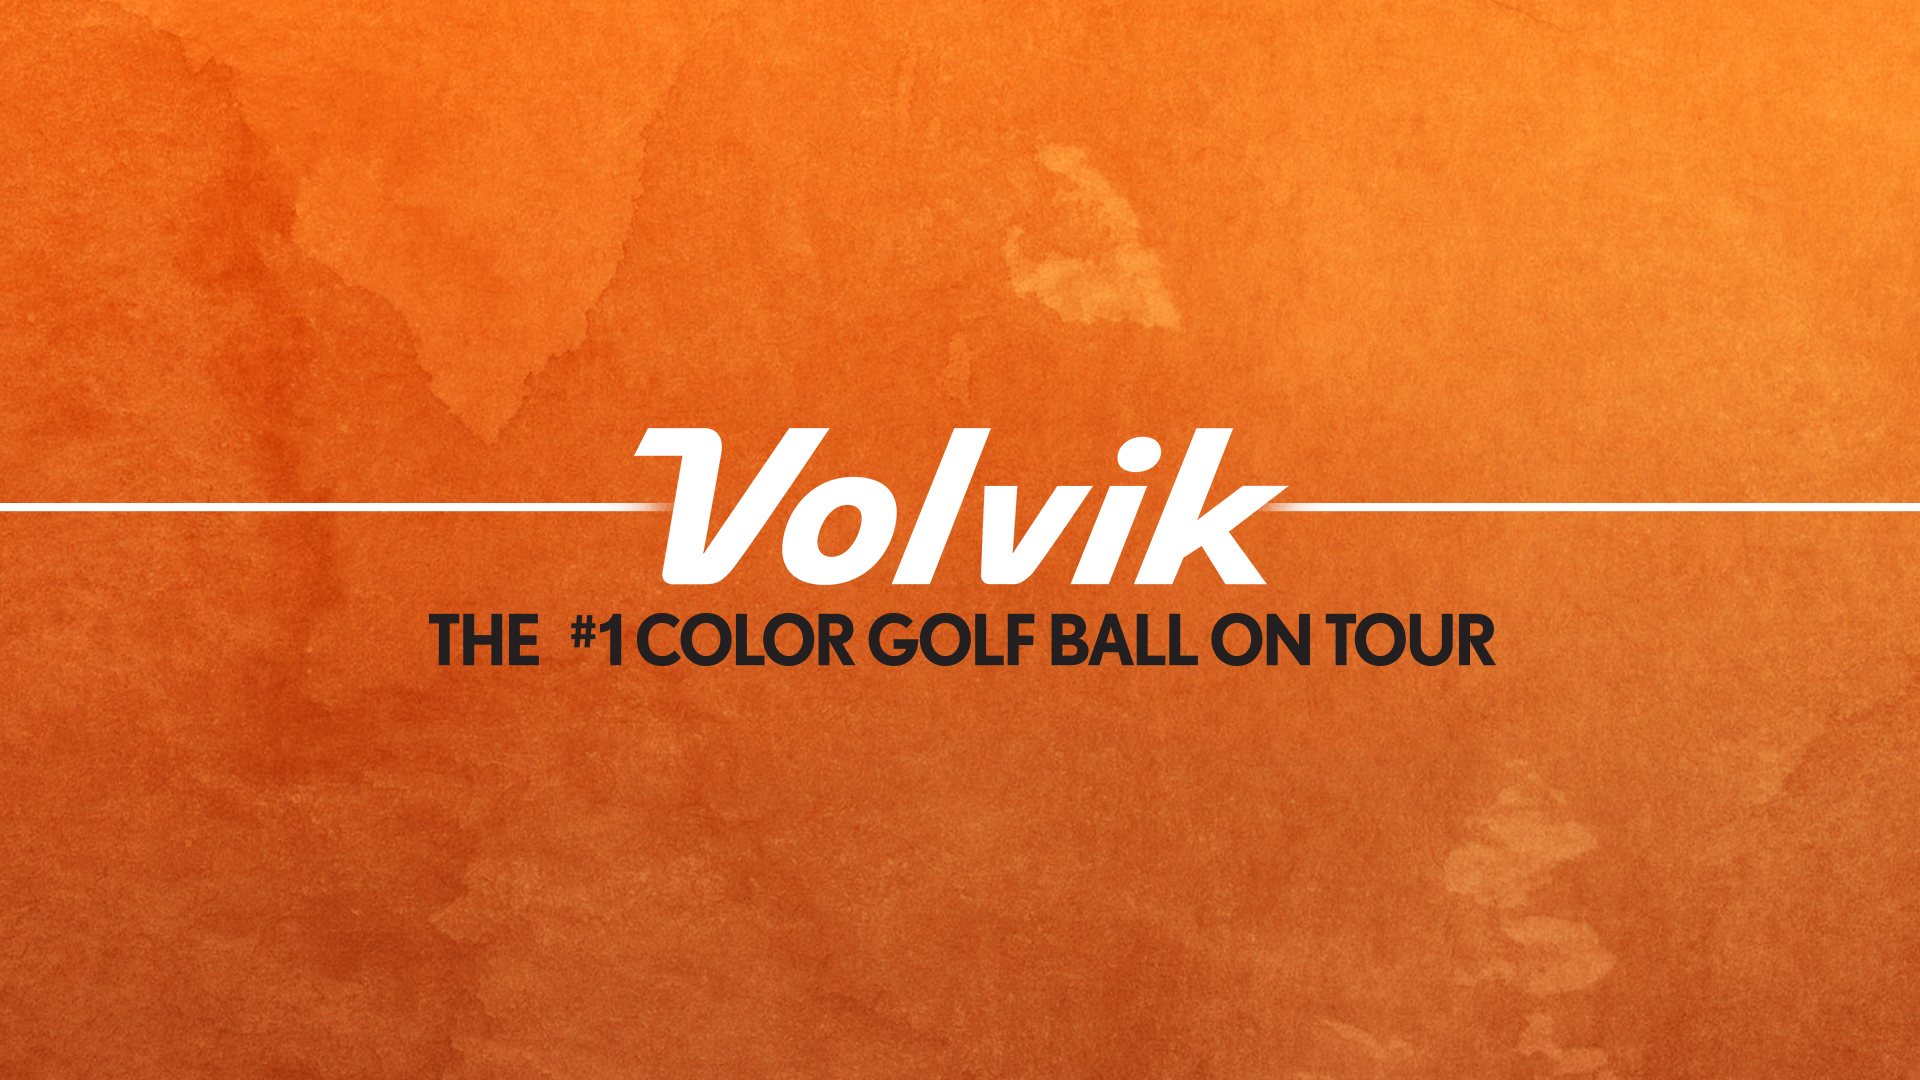 Volvik Seeks Independent Golf Sales Representatives